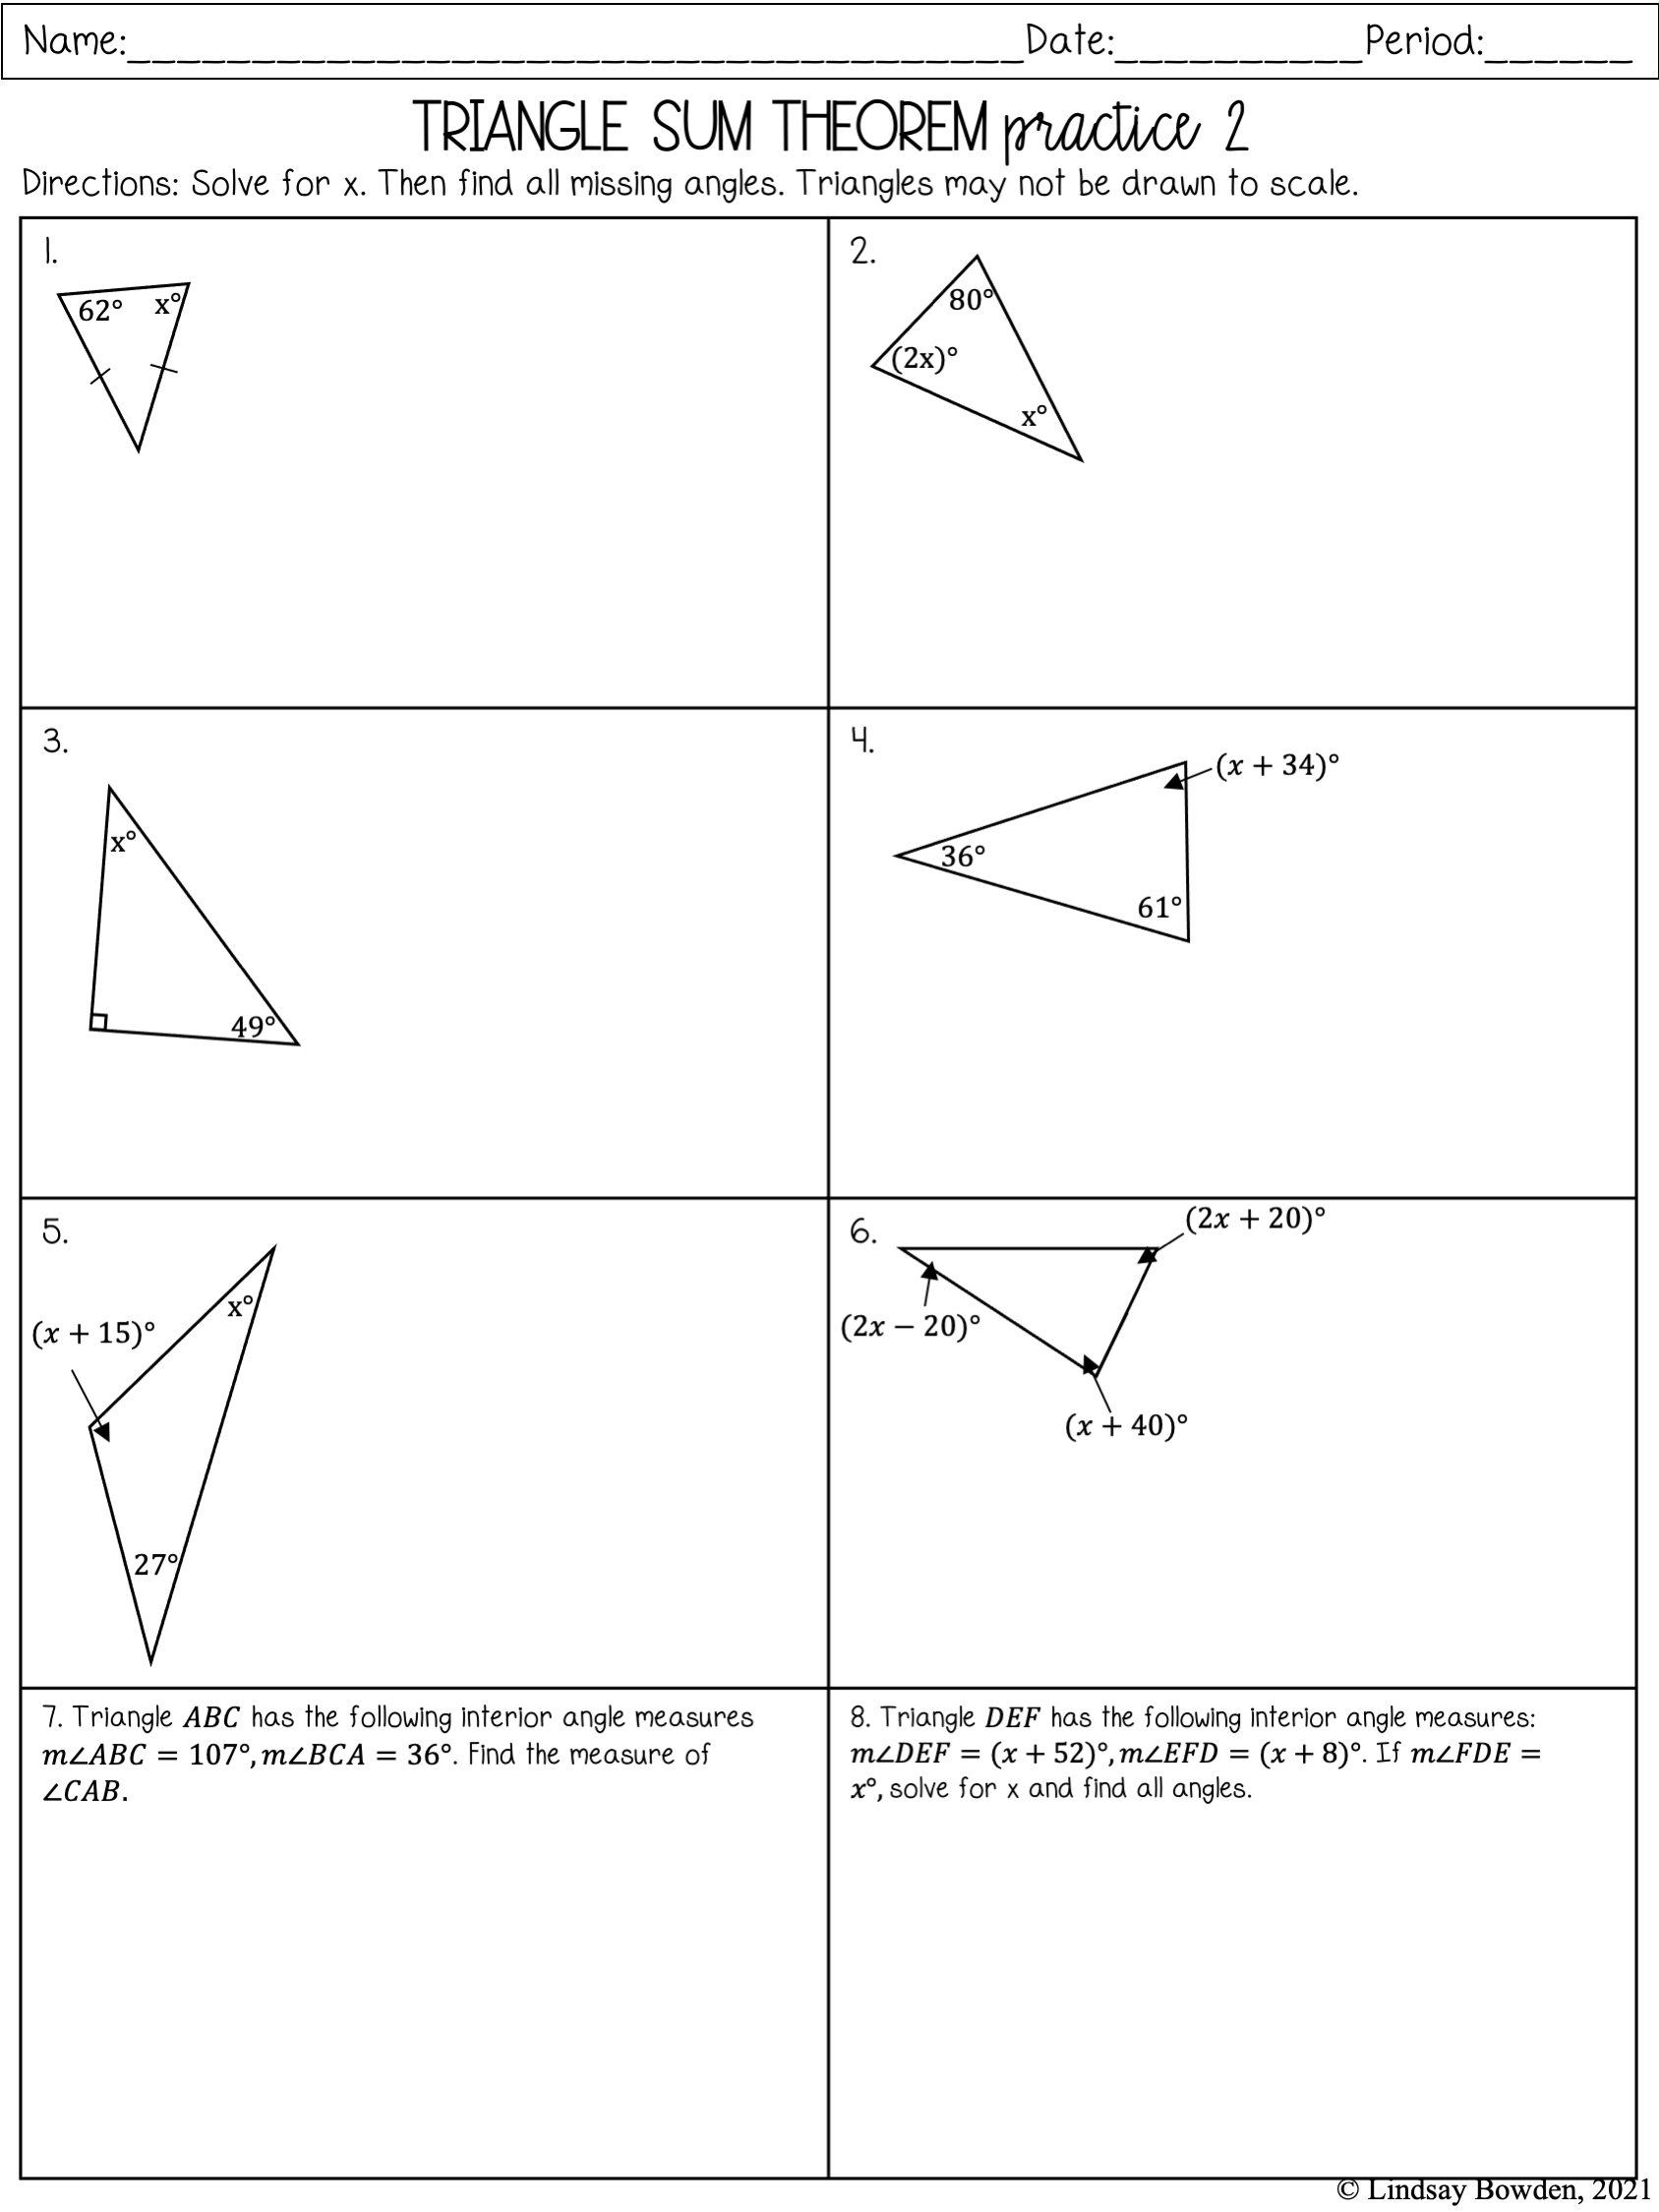 Triangle Sum Theorem Notes and Worksheets - Lindsay Bowden Inside Triangle Angle Sum Worksheet